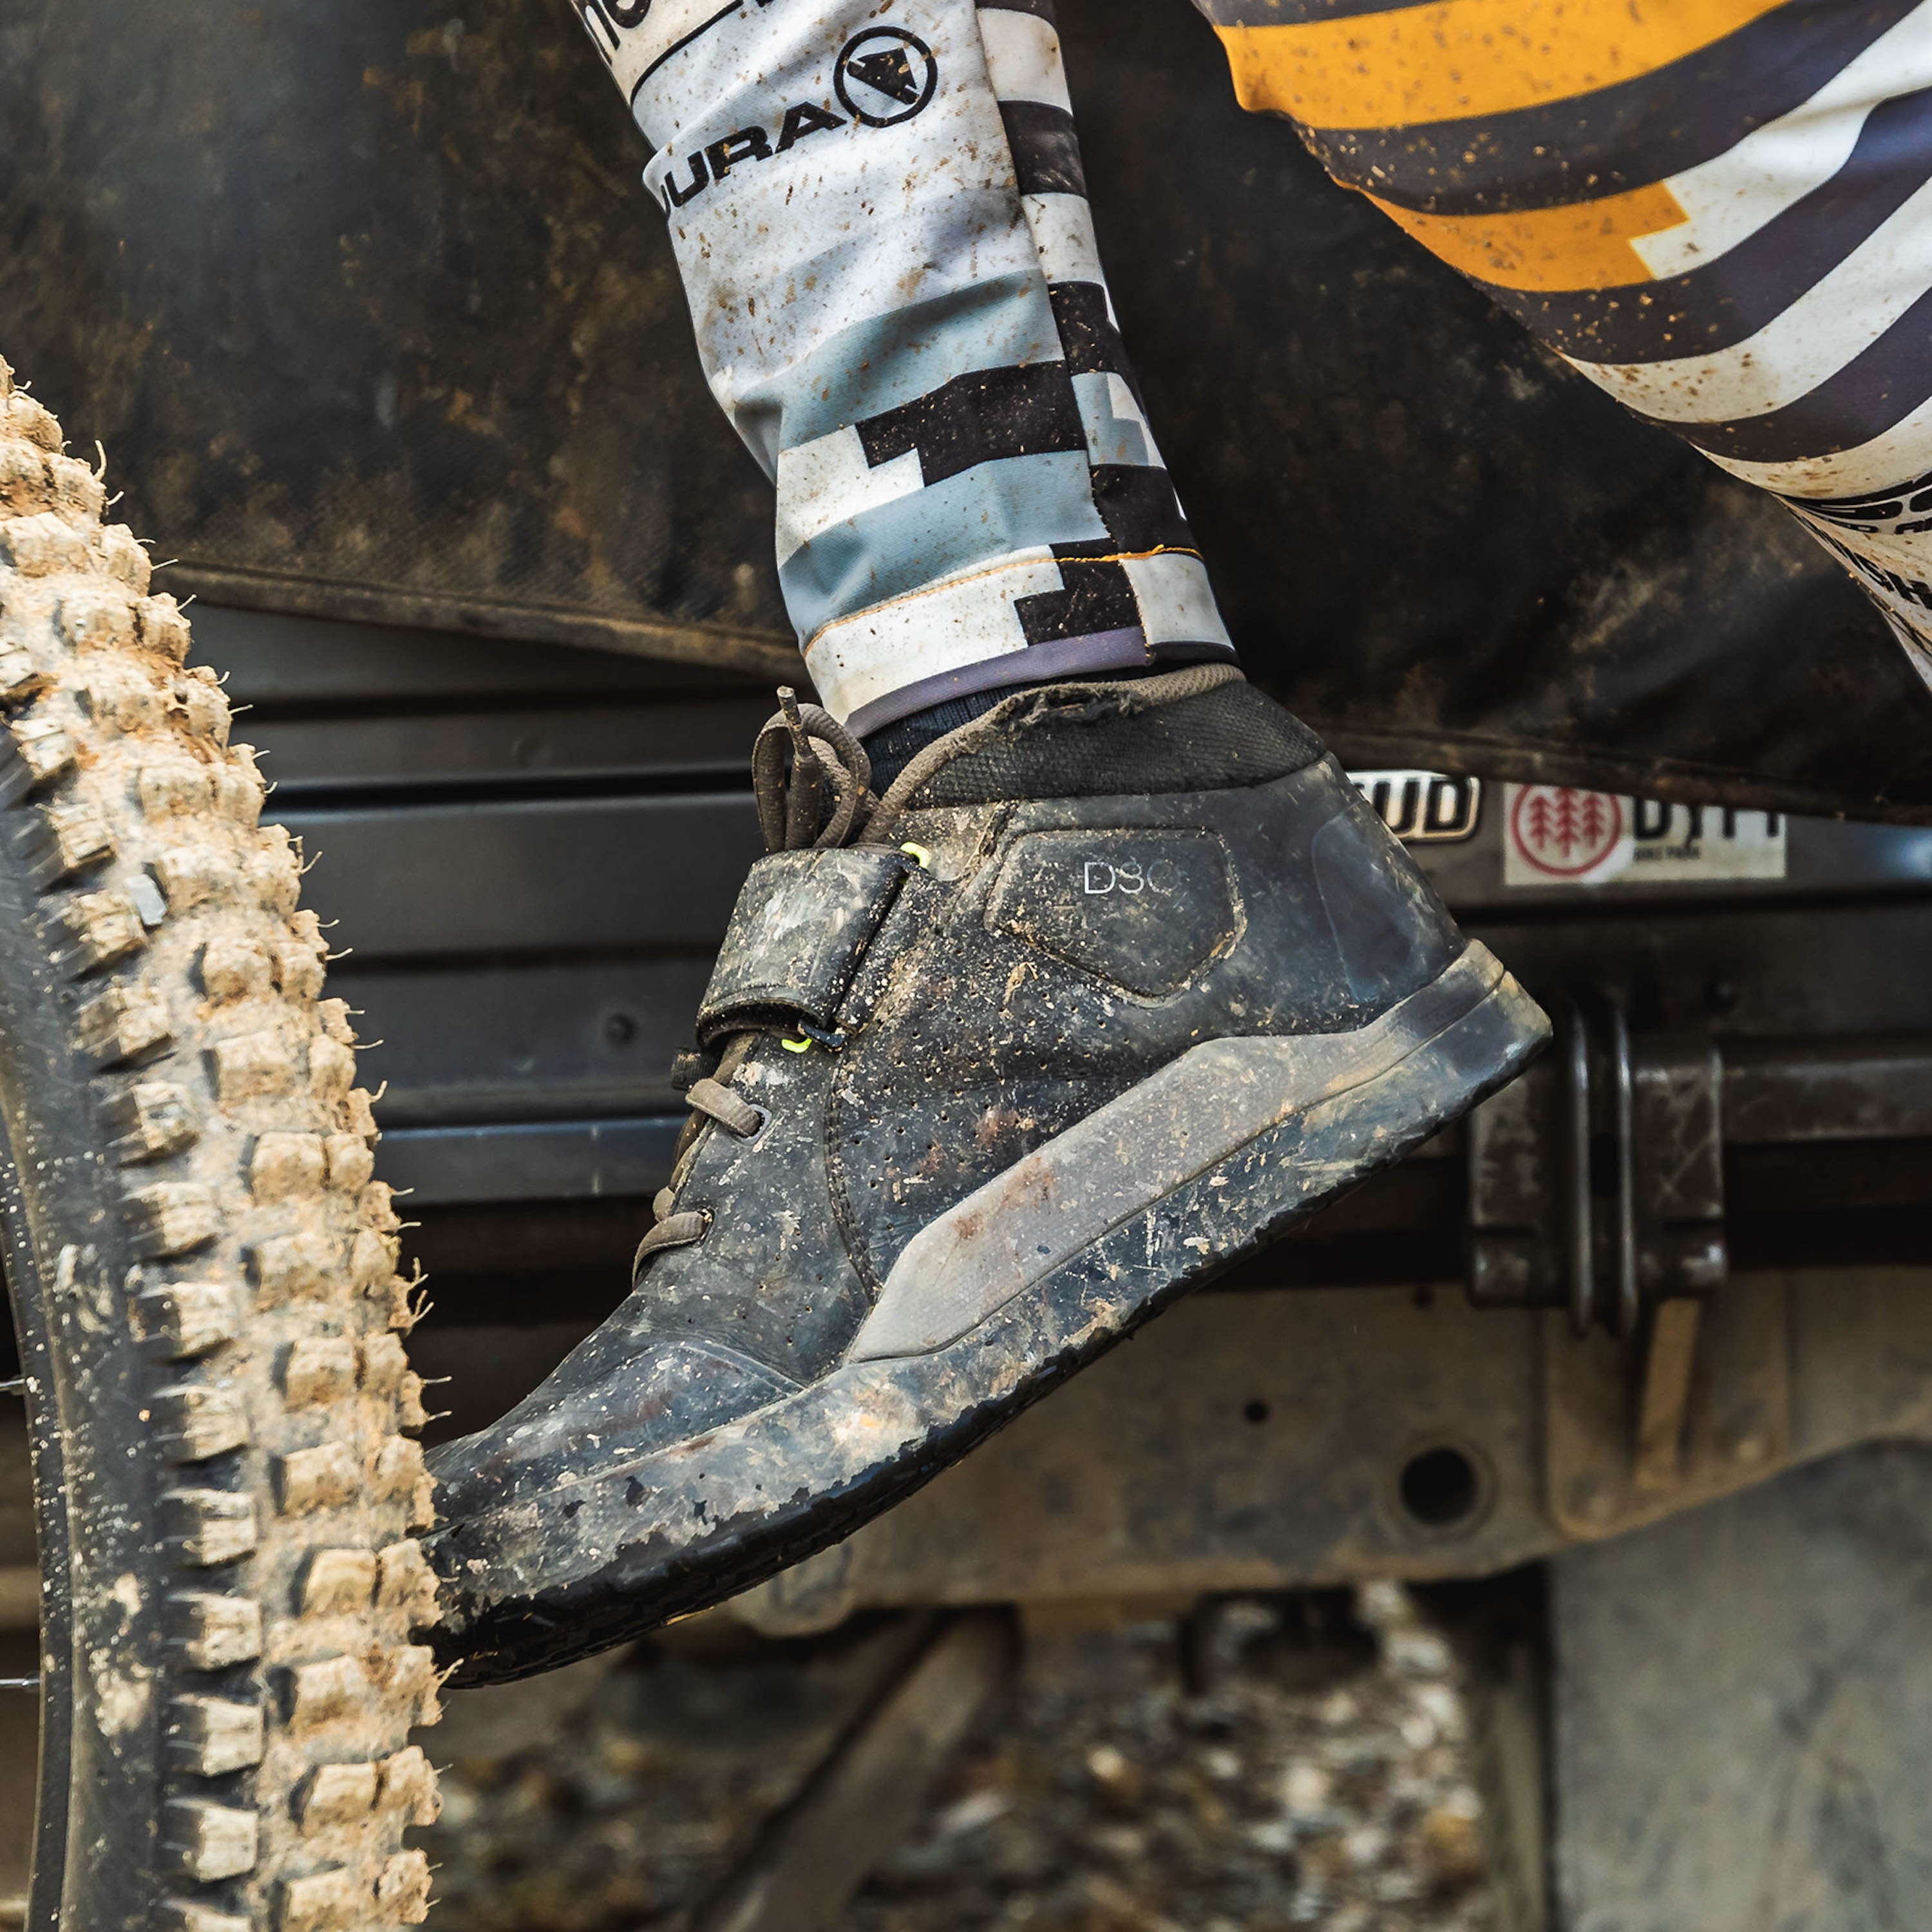 Dan Atherton - Ride Concepts TNT, A Day in the Shoes of Dan Atherton – Ride Concepts TNT